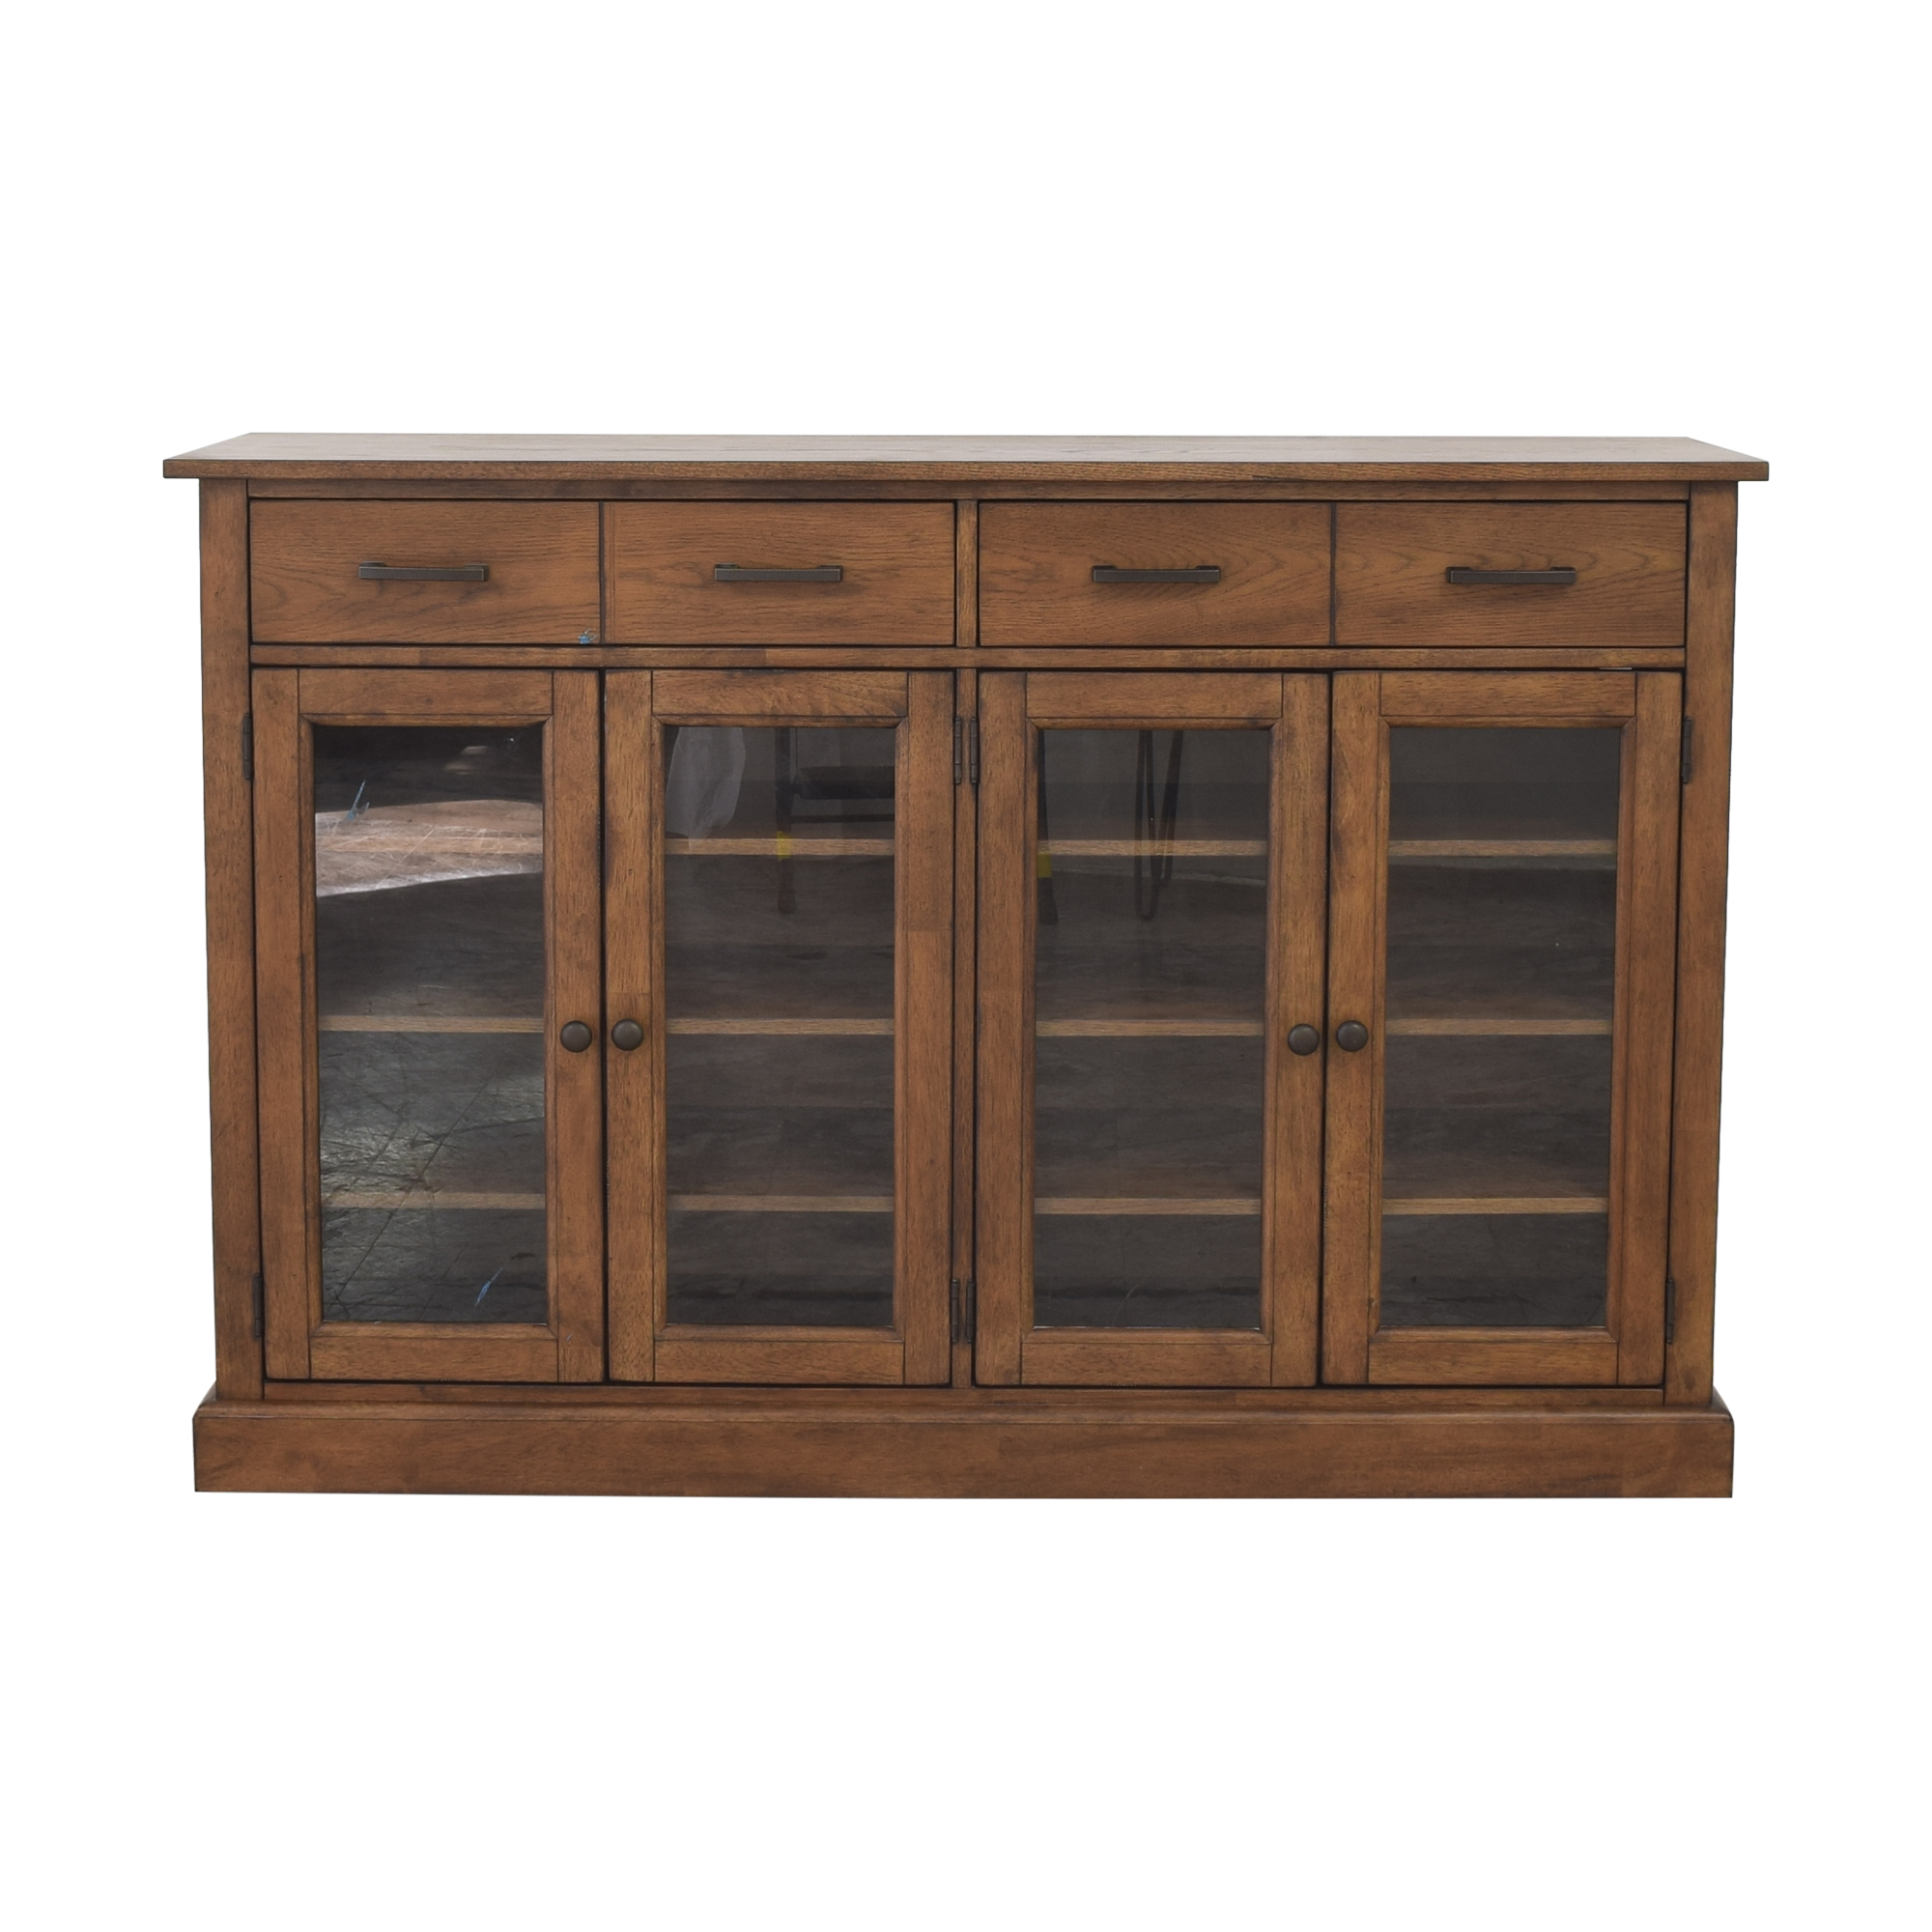 Wayfair Buffet Cabinet / Storage